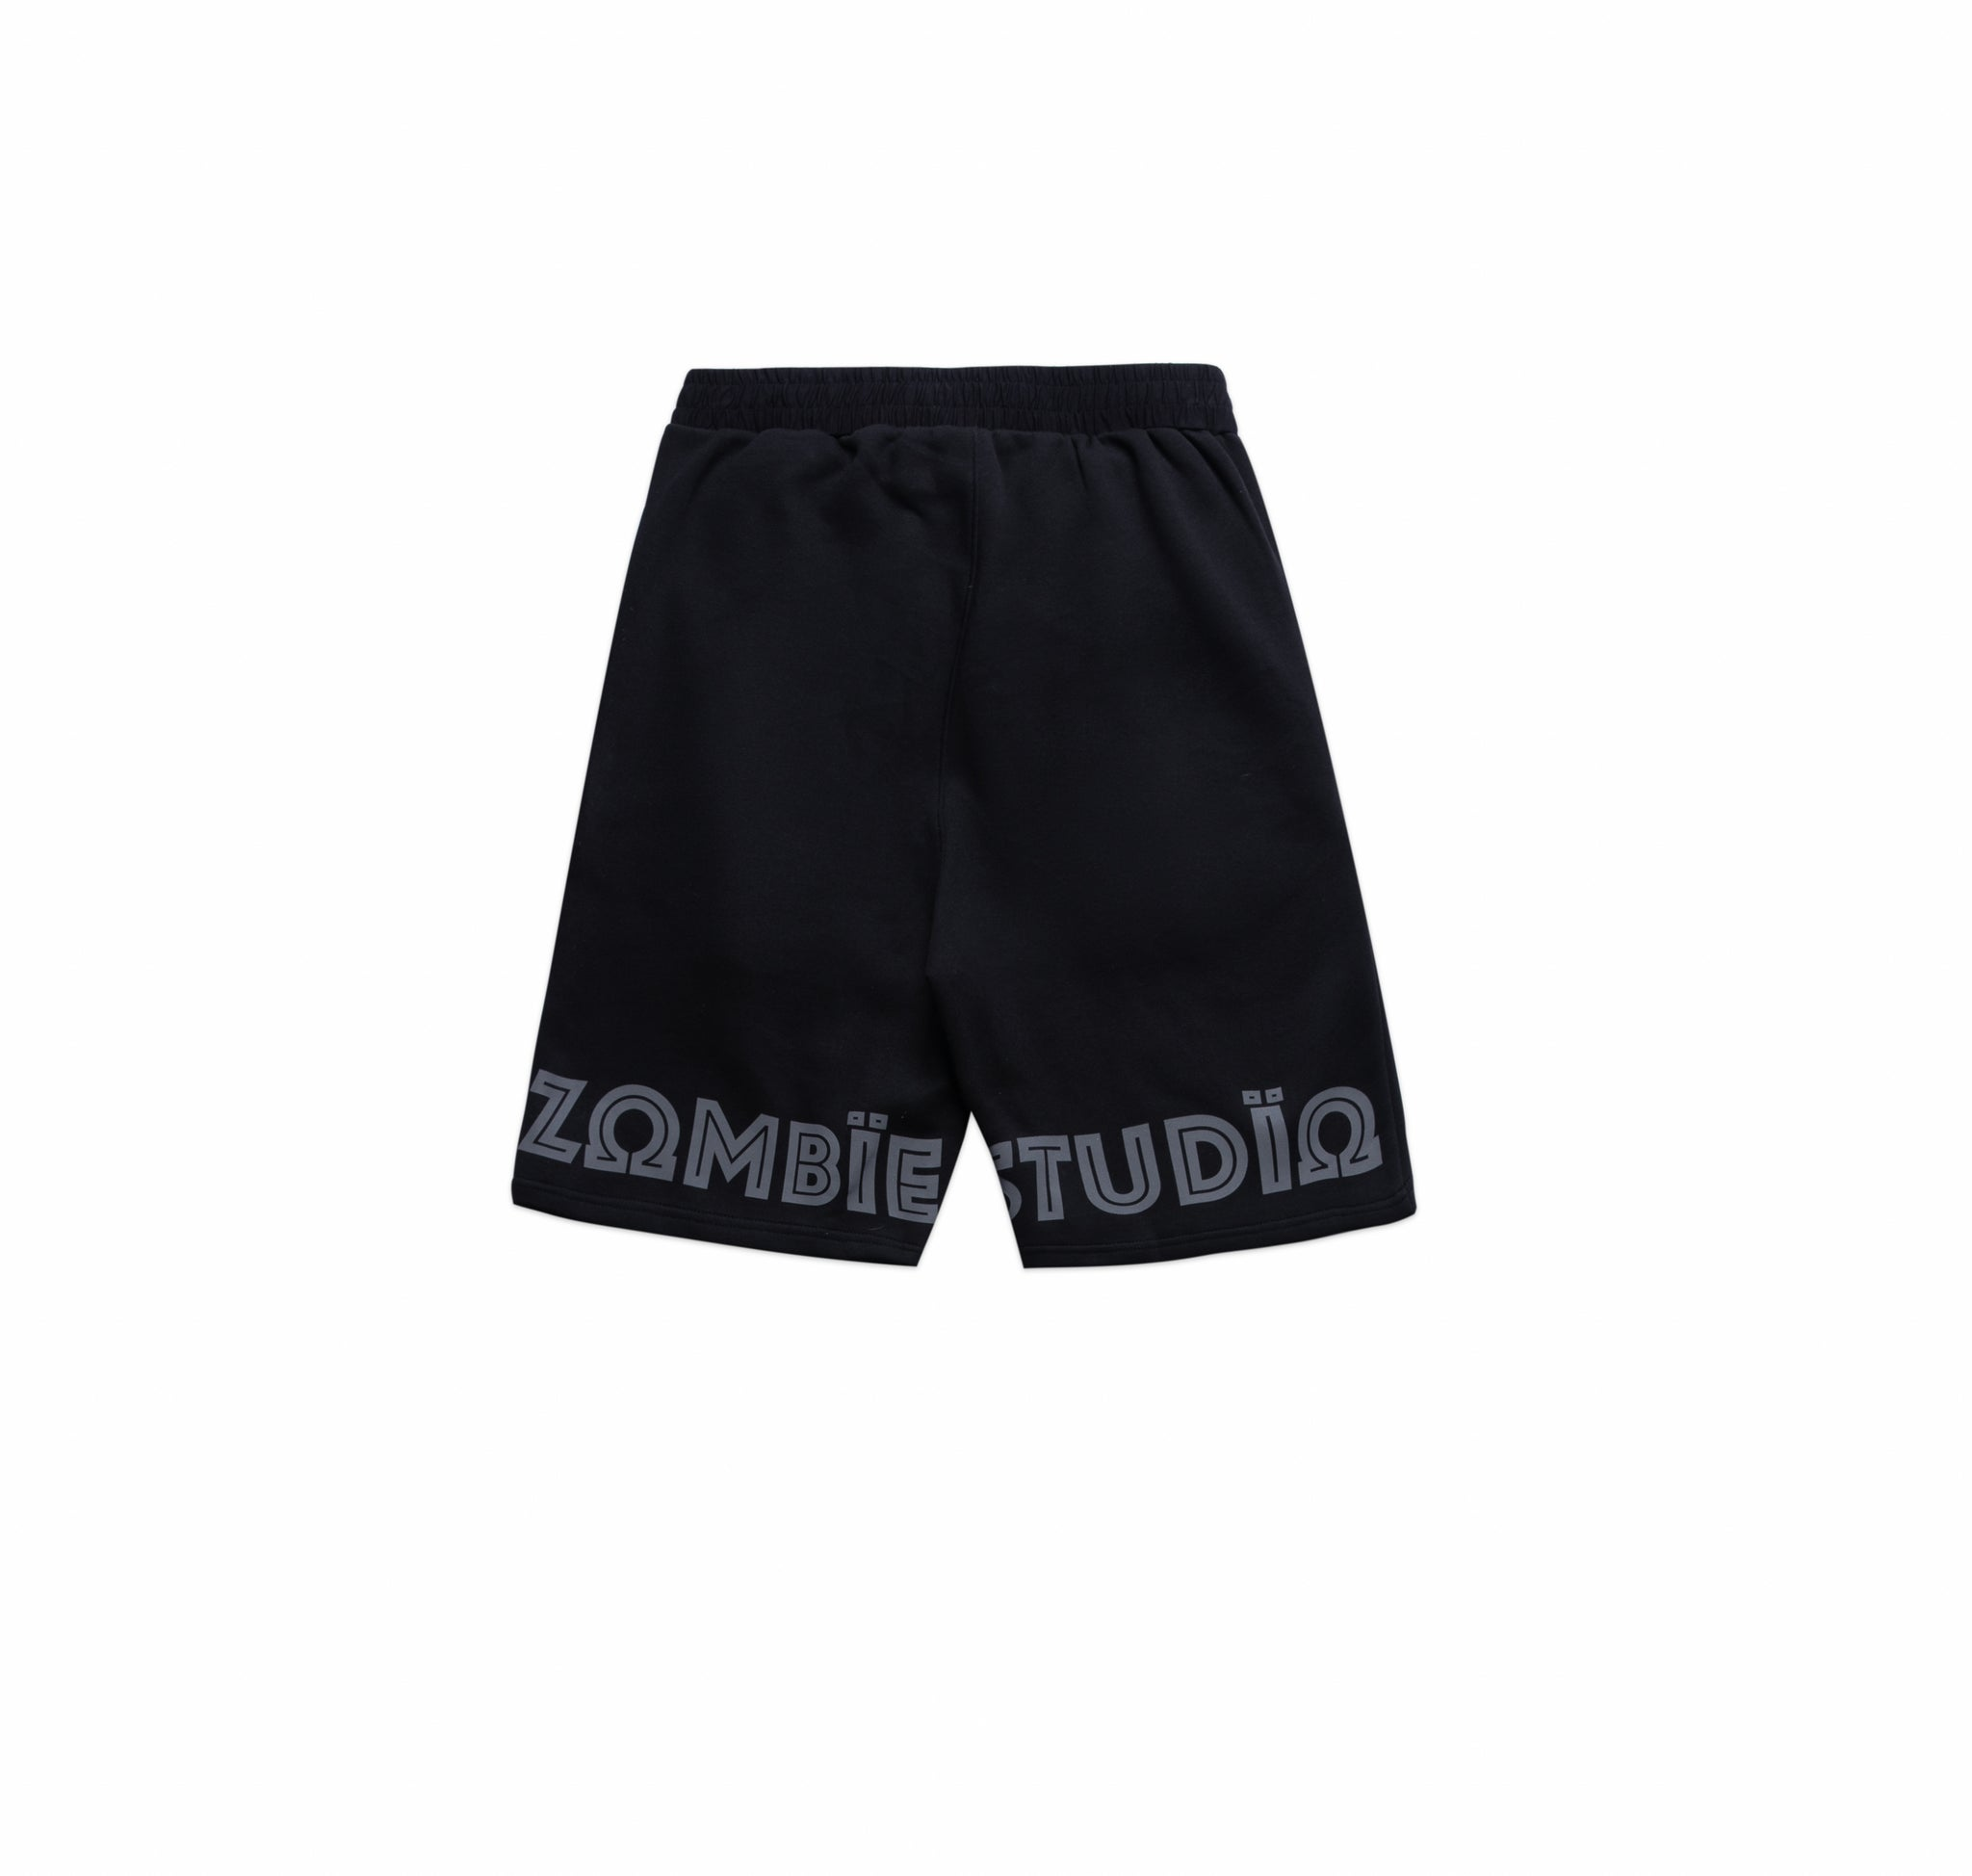 ZB Reflection Short In Black